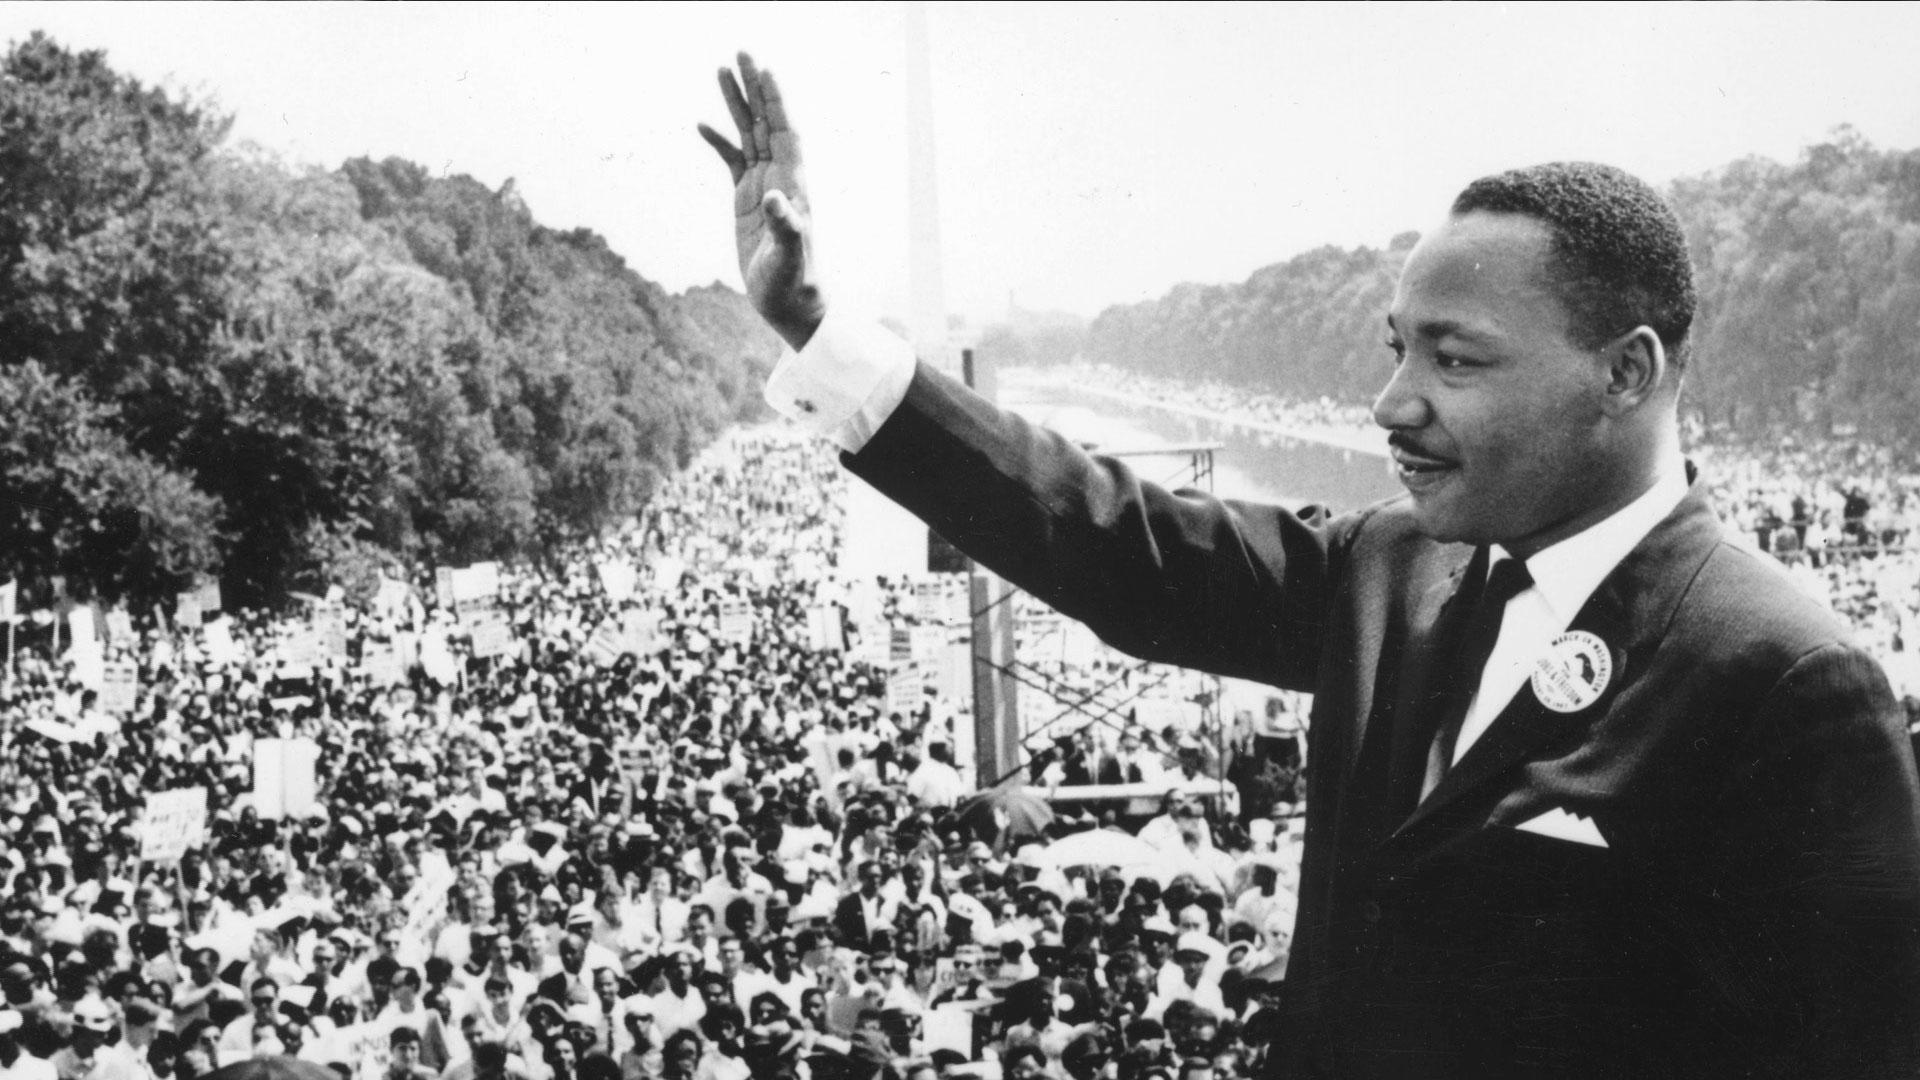 El FBI acusaba a Martin Luther King de